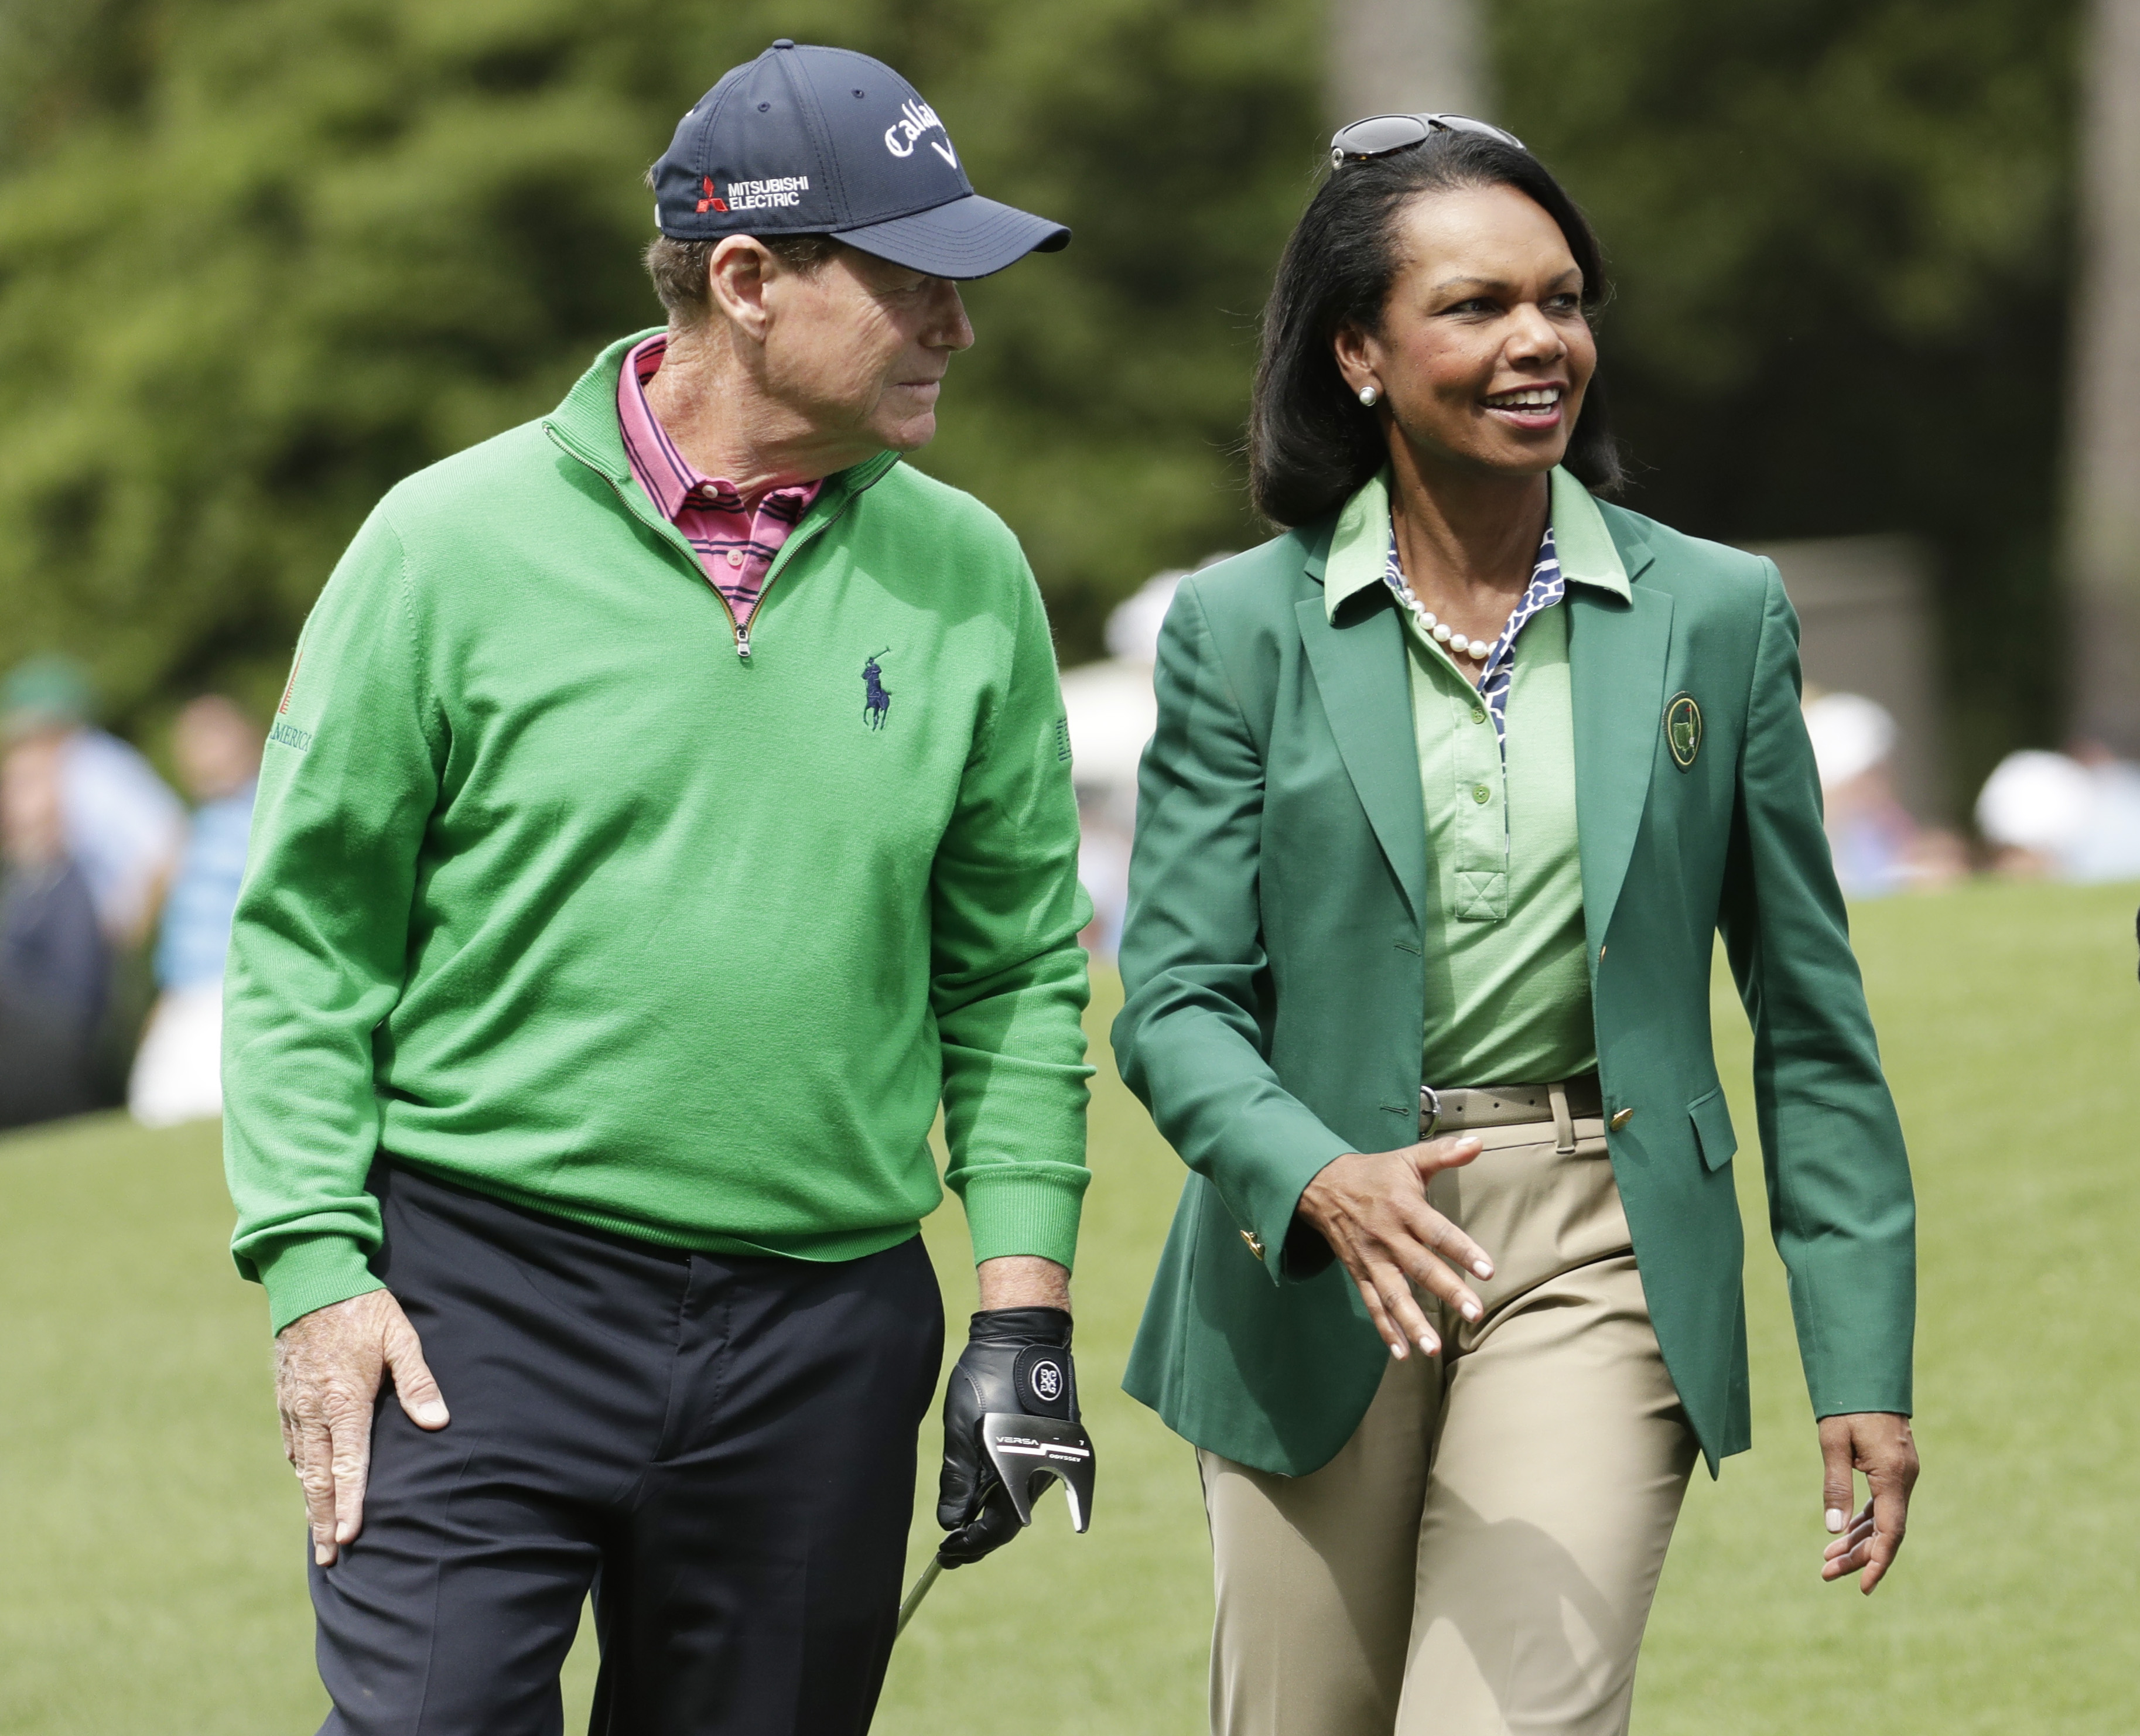 Former Secretary of State Condoleeza Rice speaks with Tom Watson during the par three competition at the Masters golf tournament Wednesday, April 6, 2016, in Augusta, Ga. (AP Photo/Charlie Riedel)